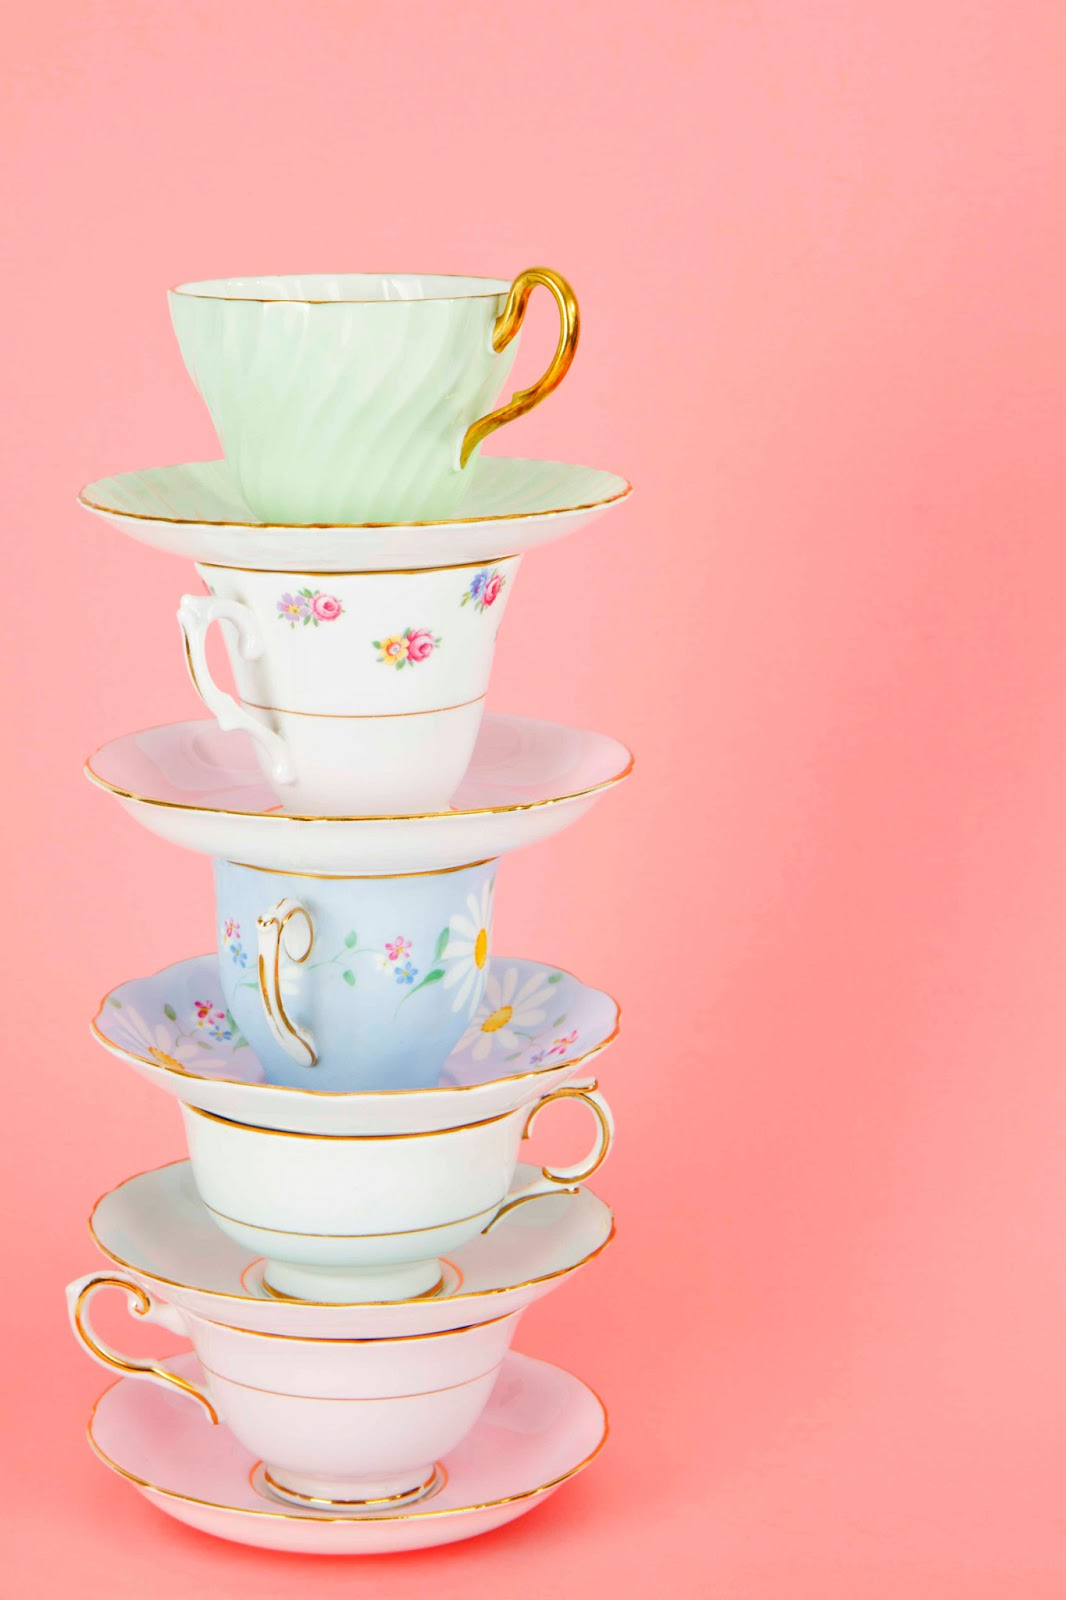 Gin Gilli S Vintage Home 10 Fun Facts About Tea